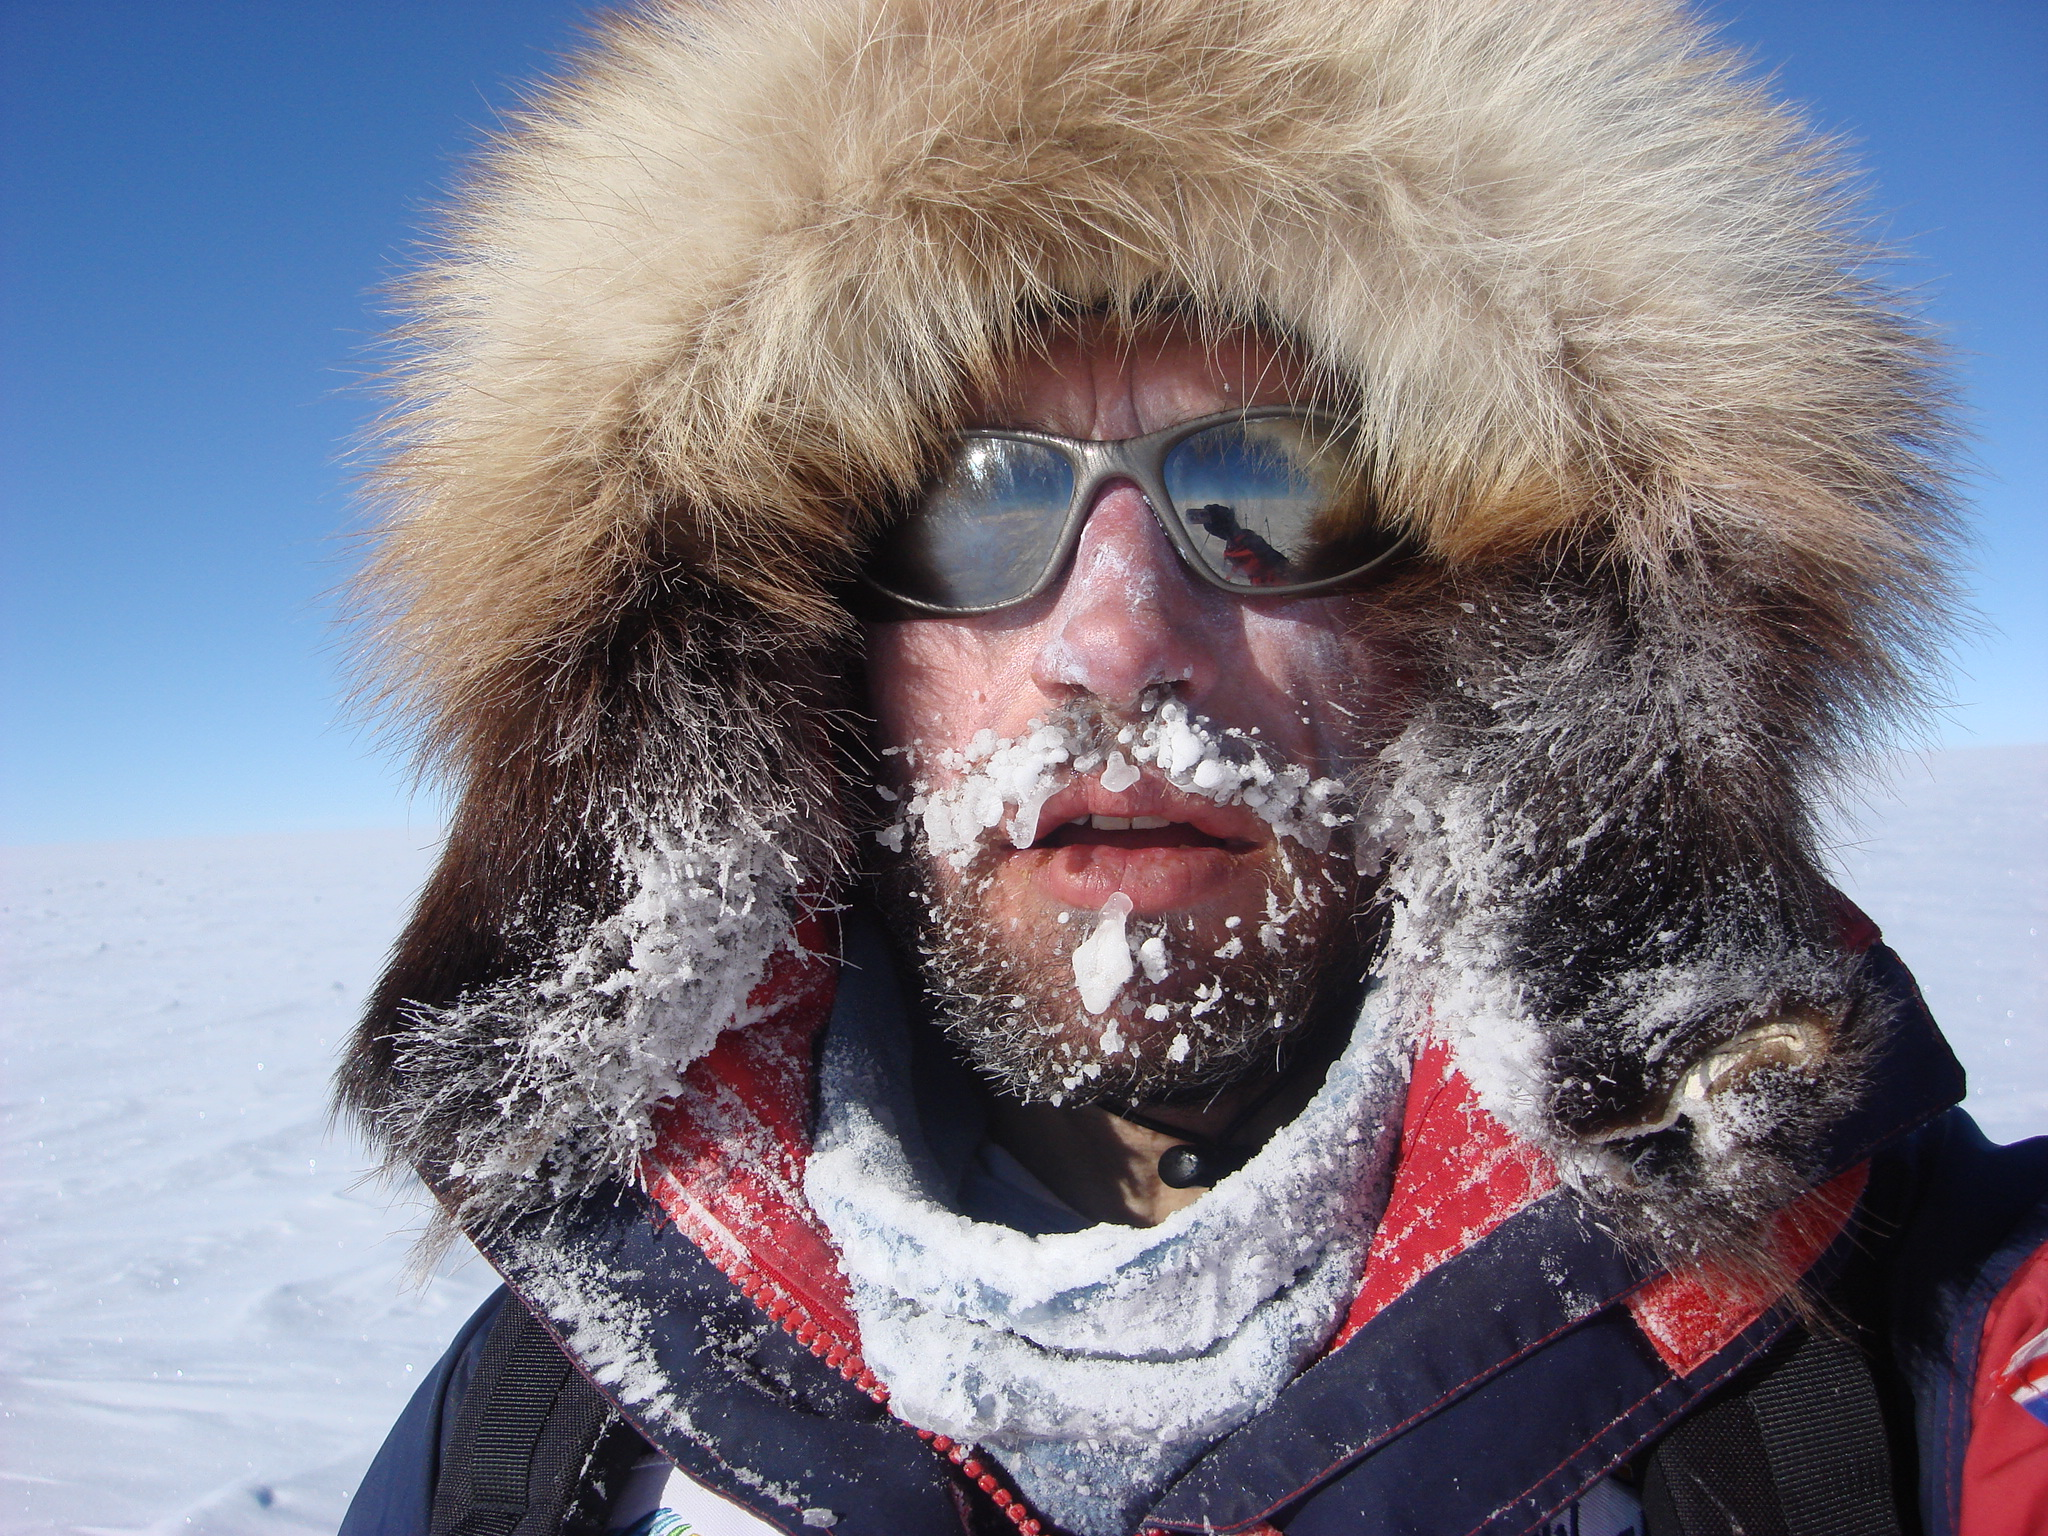 Adrian Hayes - Adventurer, author and documentary presenter